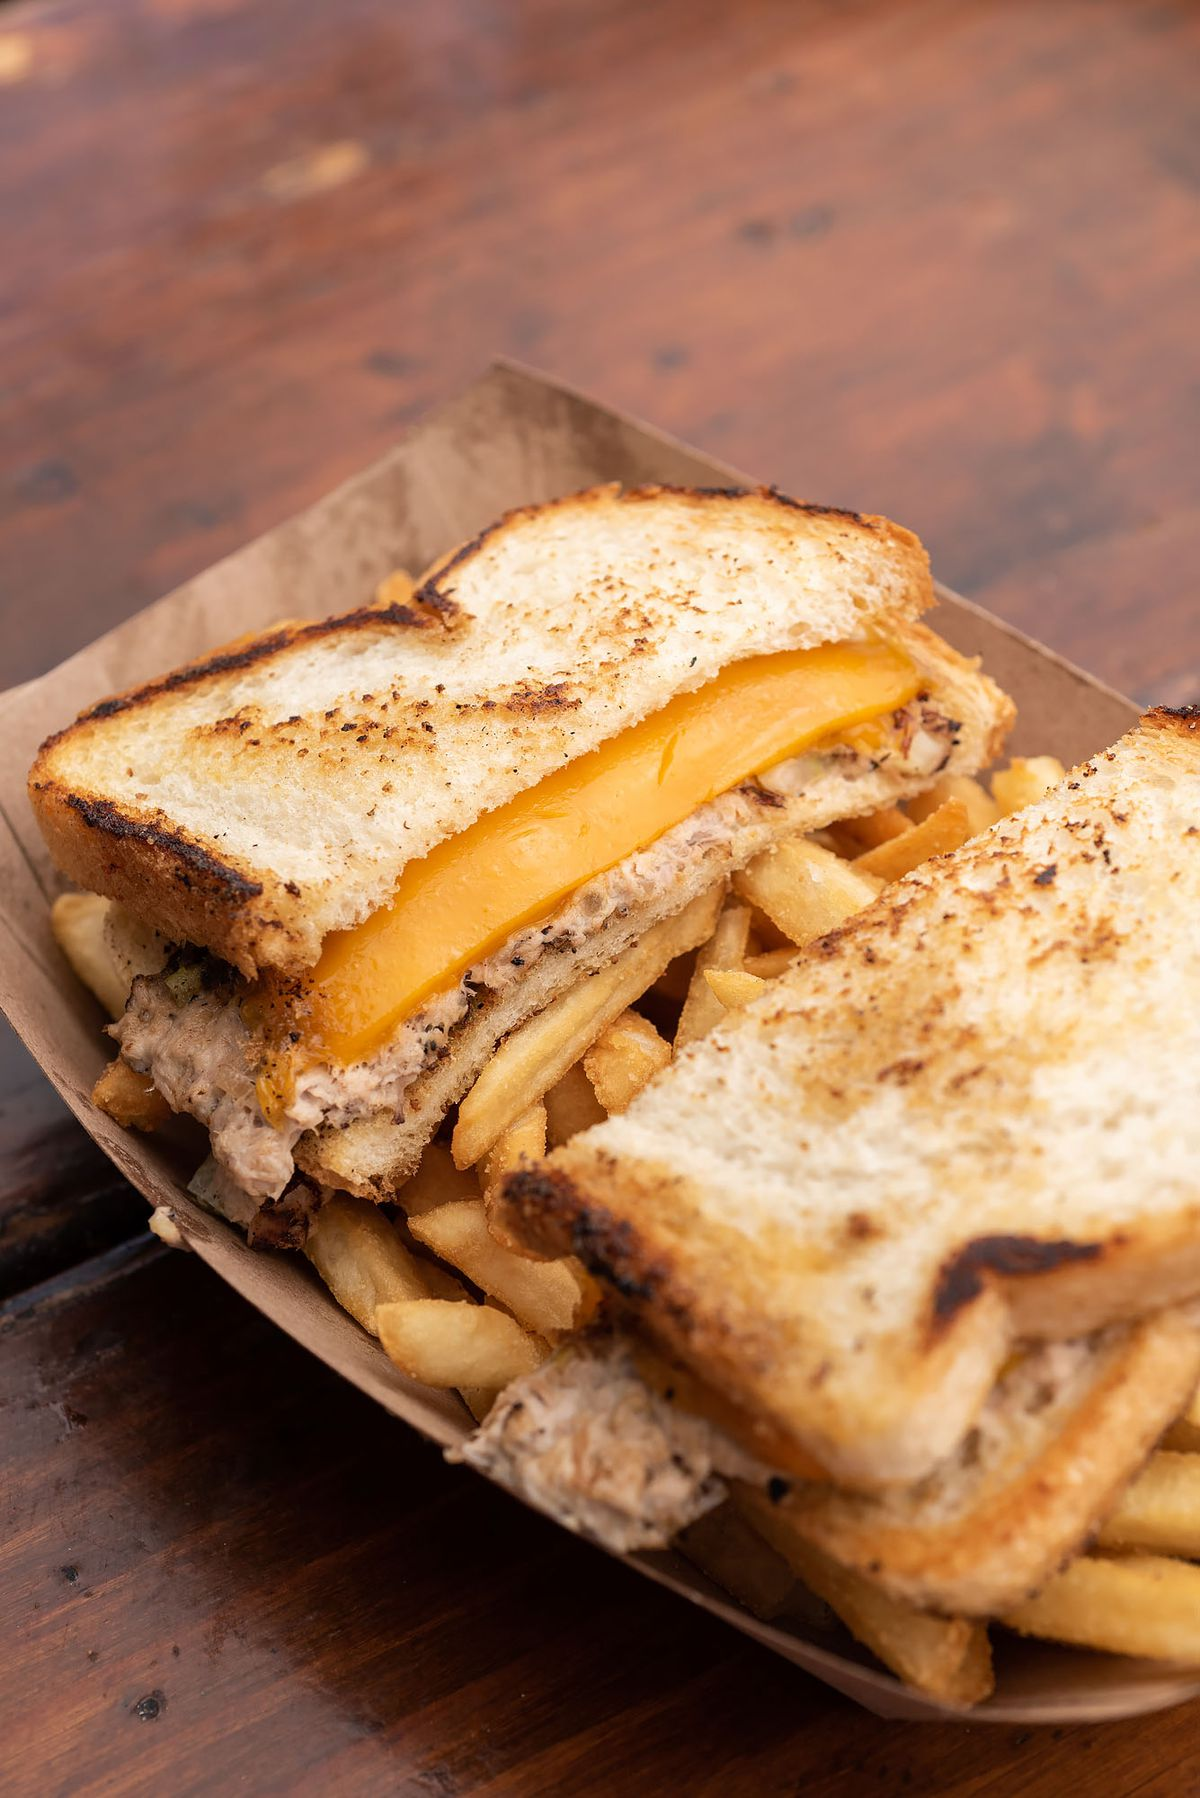 A tuna melt with partially-melted American cheese on a wooden table.